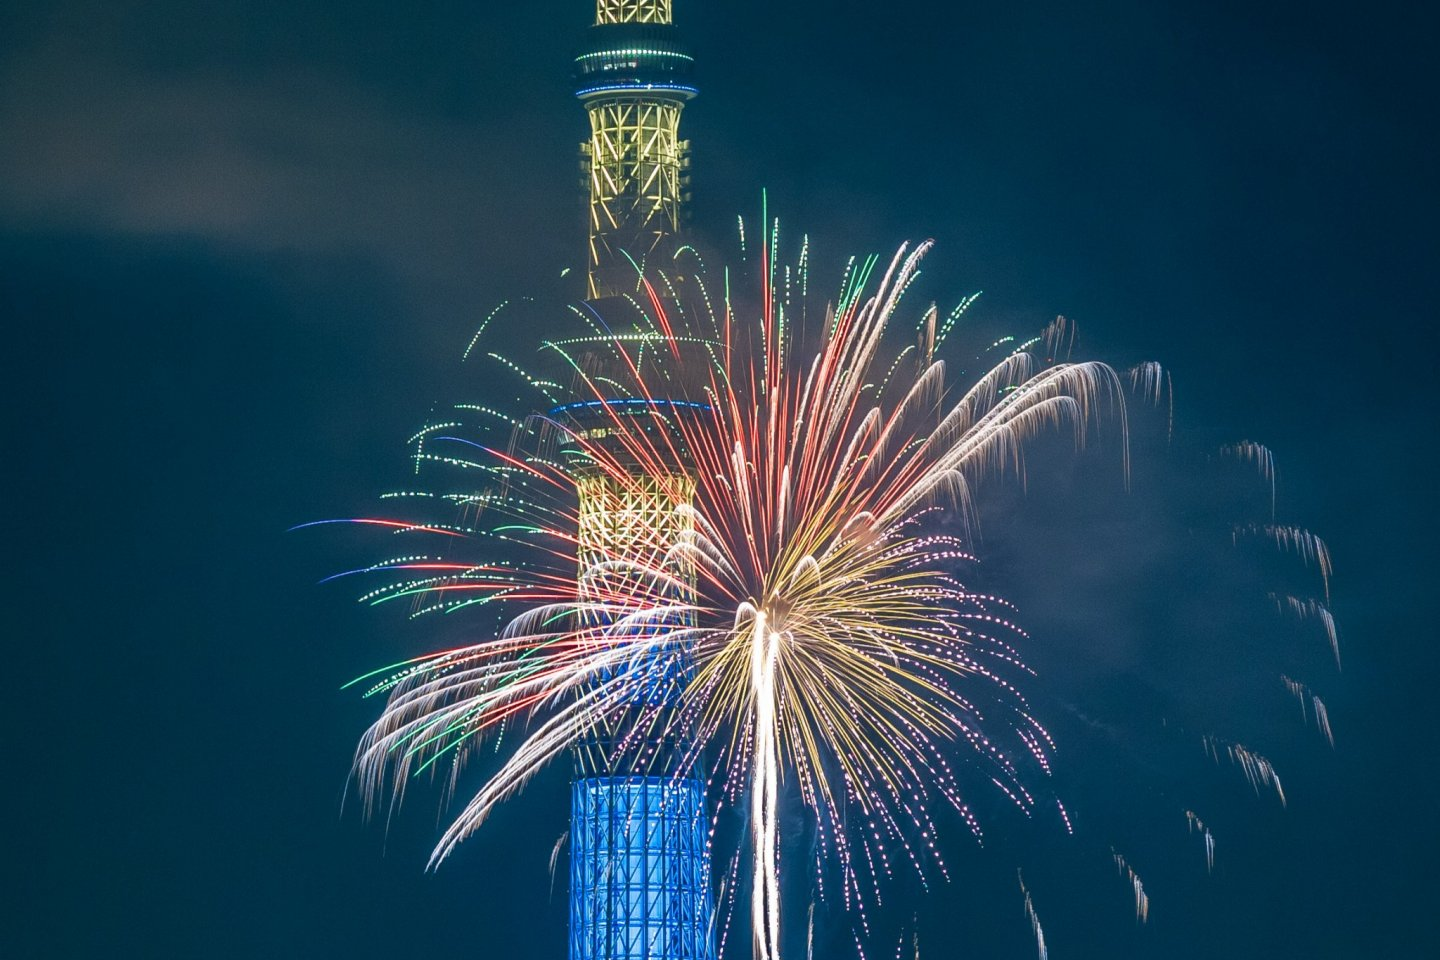 Colorful fireworks in front of the Tokyo Skytree